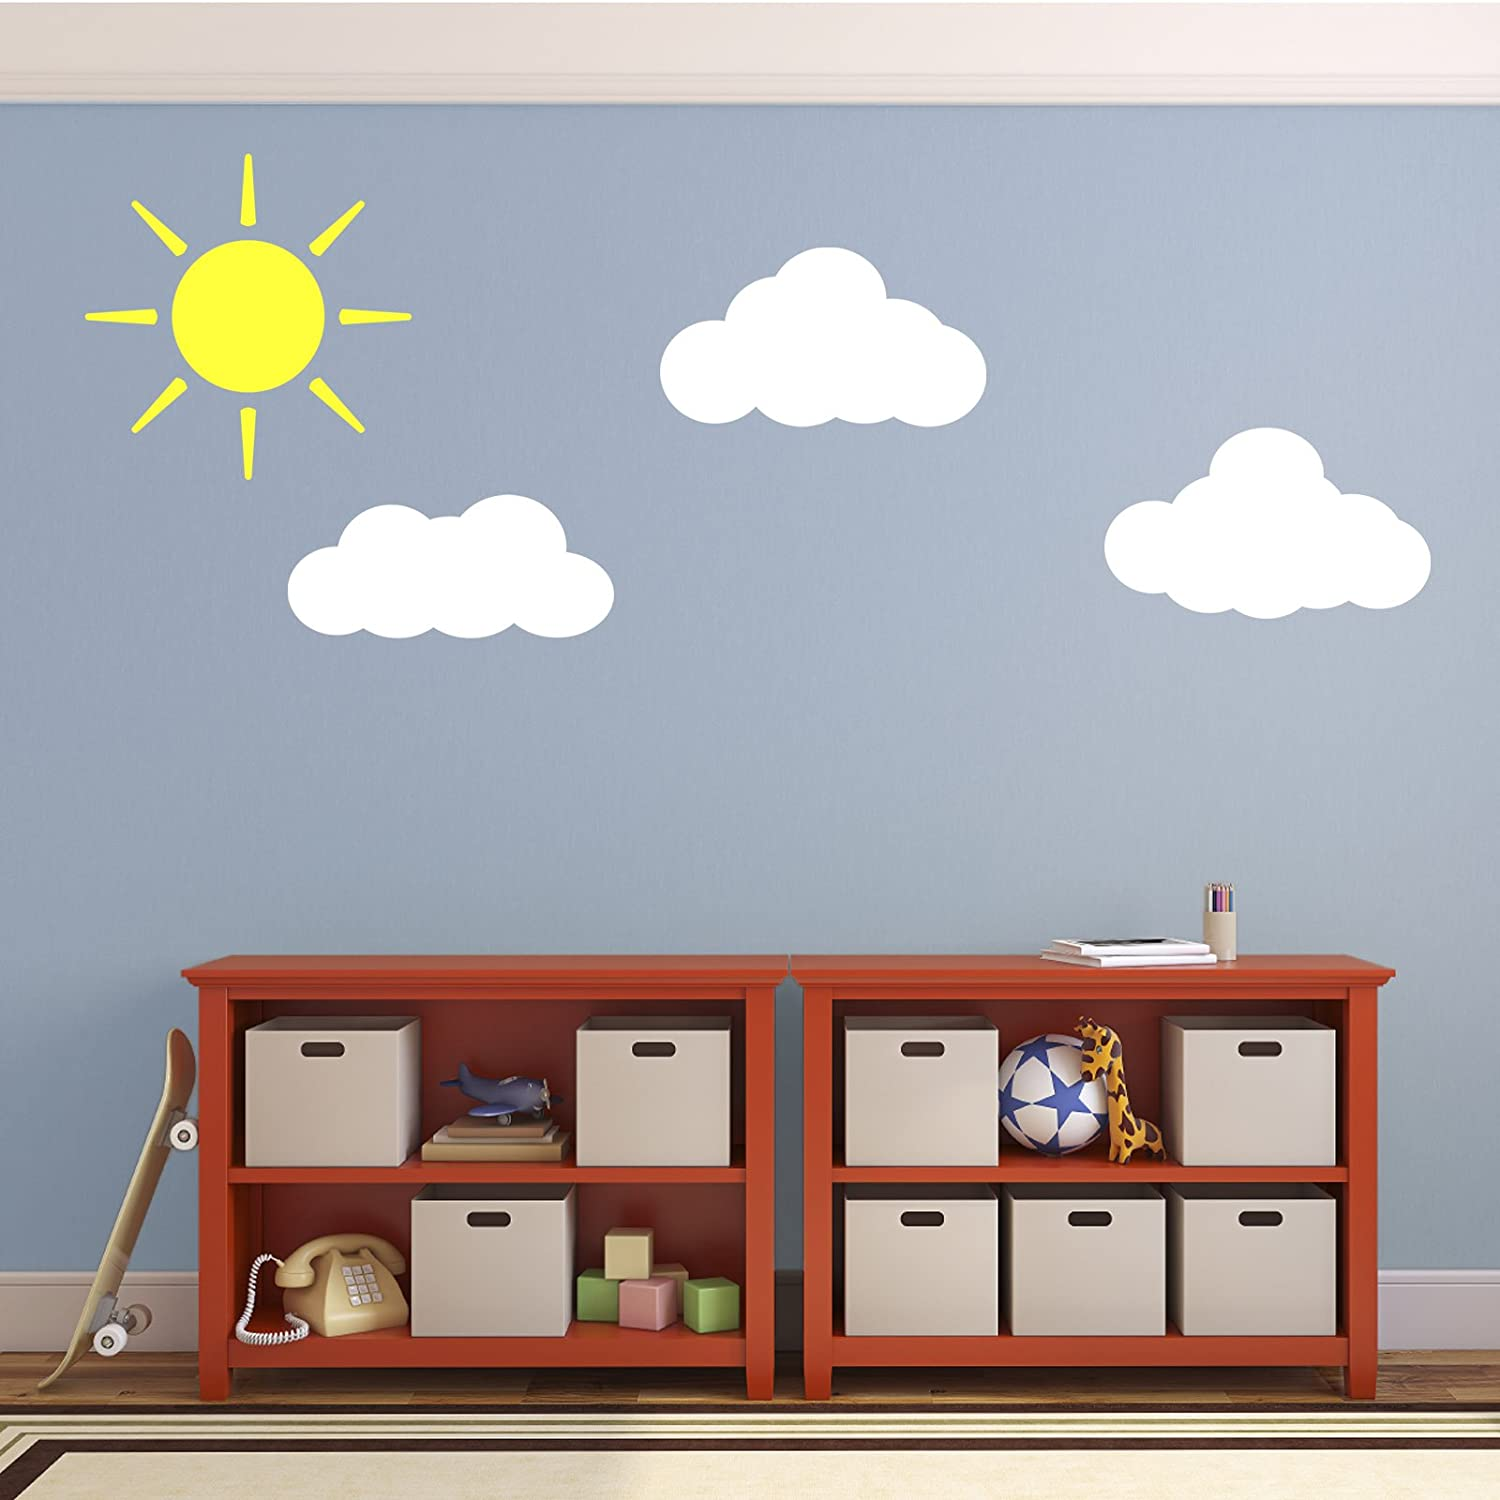 Sun and clouds wall decals stickers for childs nursery bedroom sun and clouds wall decals stickers for childs nursery bedroom or playroom amazon kitchen home amipublicfo Images